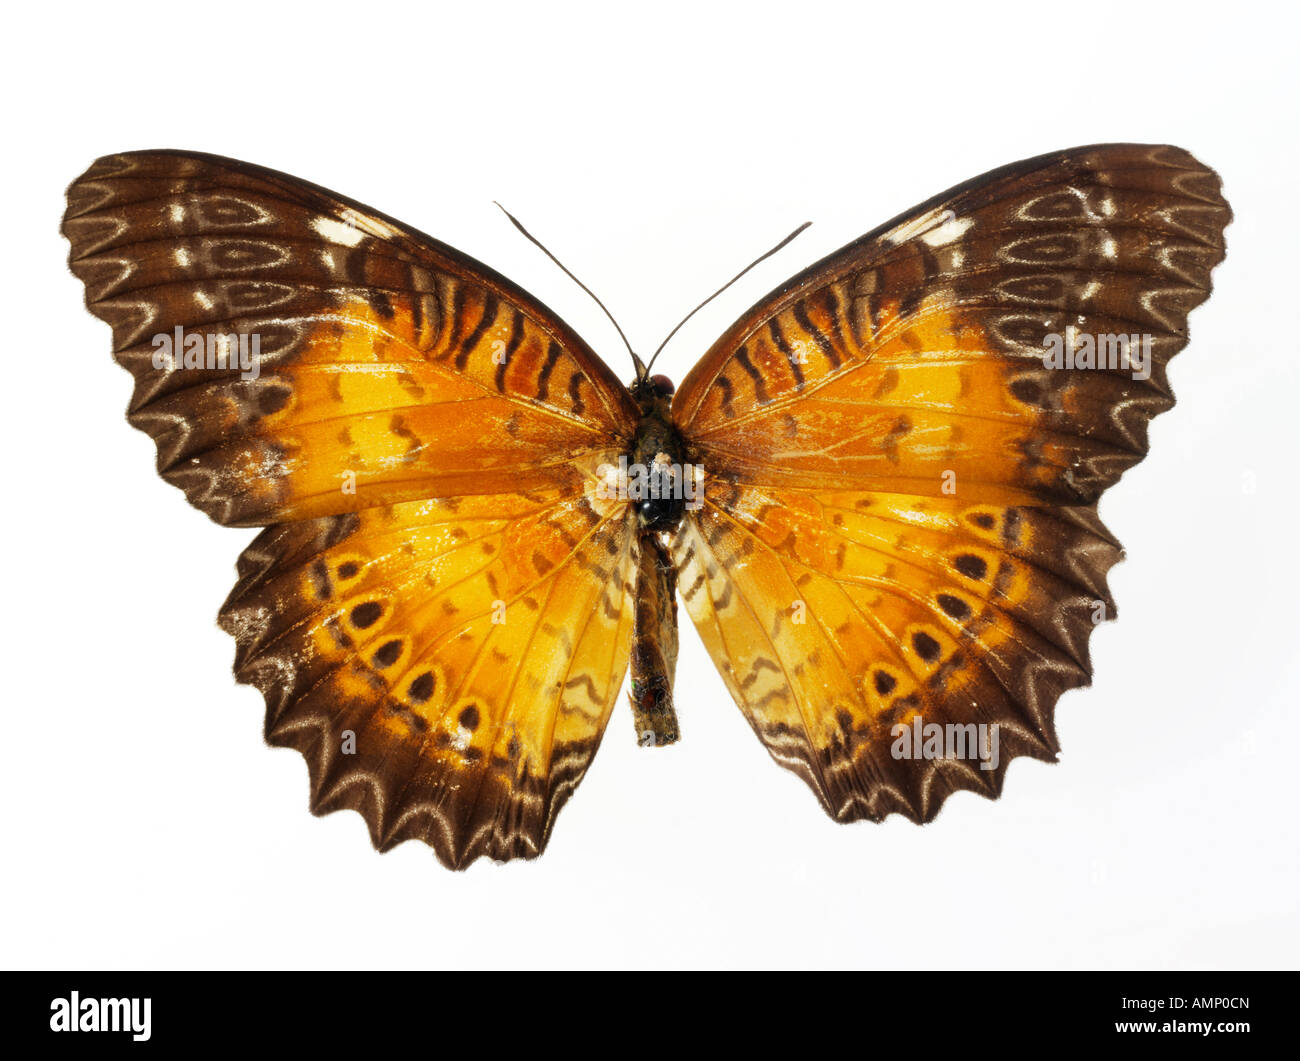 top shot plan view of a Halliconiini fritillary butterfly, opened winged, against a white background in a studio Stock Photo